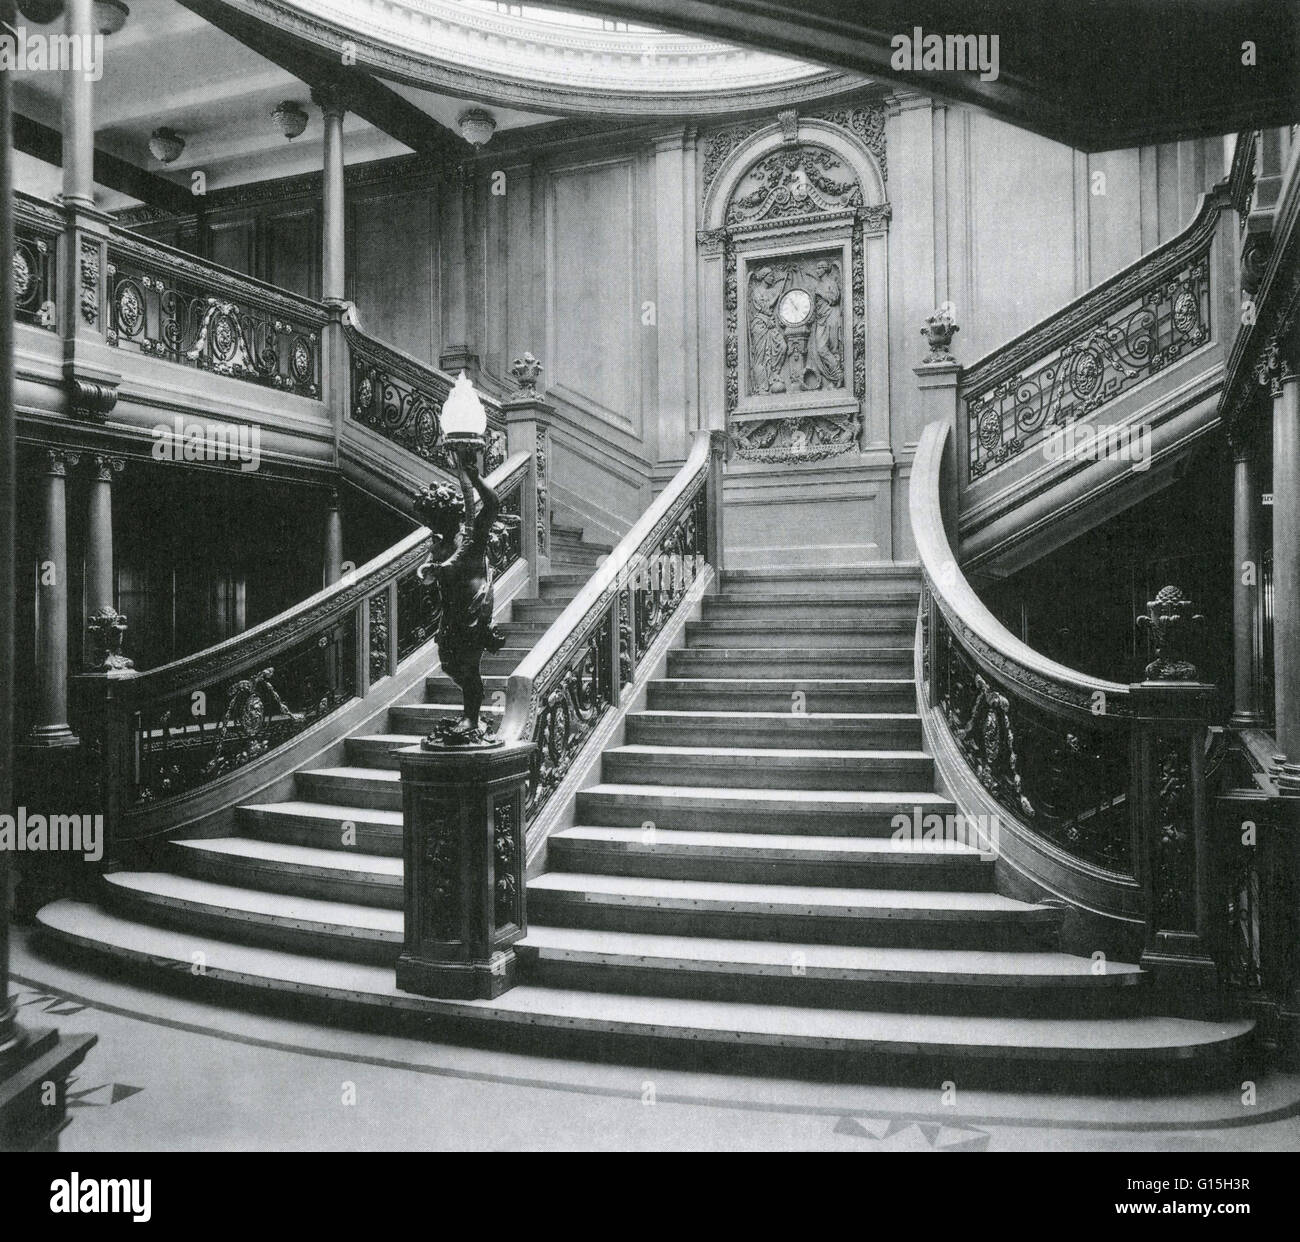 The Grand Staircase in 1912 of the famous Titanic ship. - Stock Image